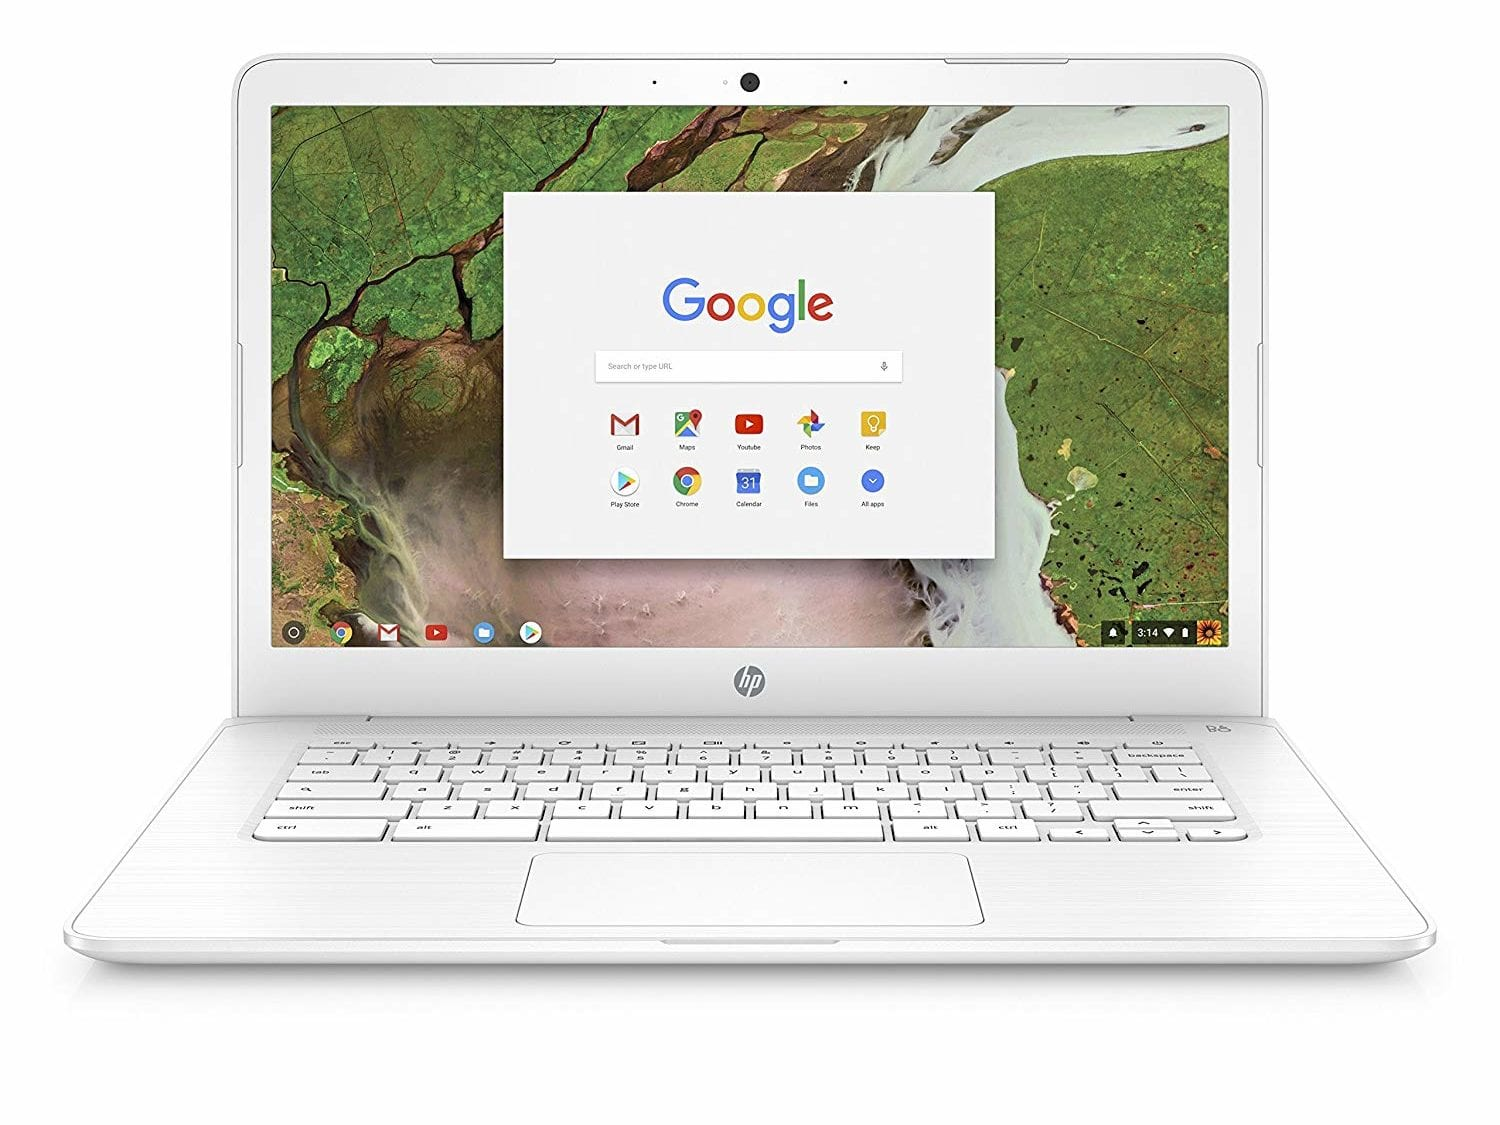 Amazon Is Giving Away An HP Chromebook 14 And Tons Of Other Goodies